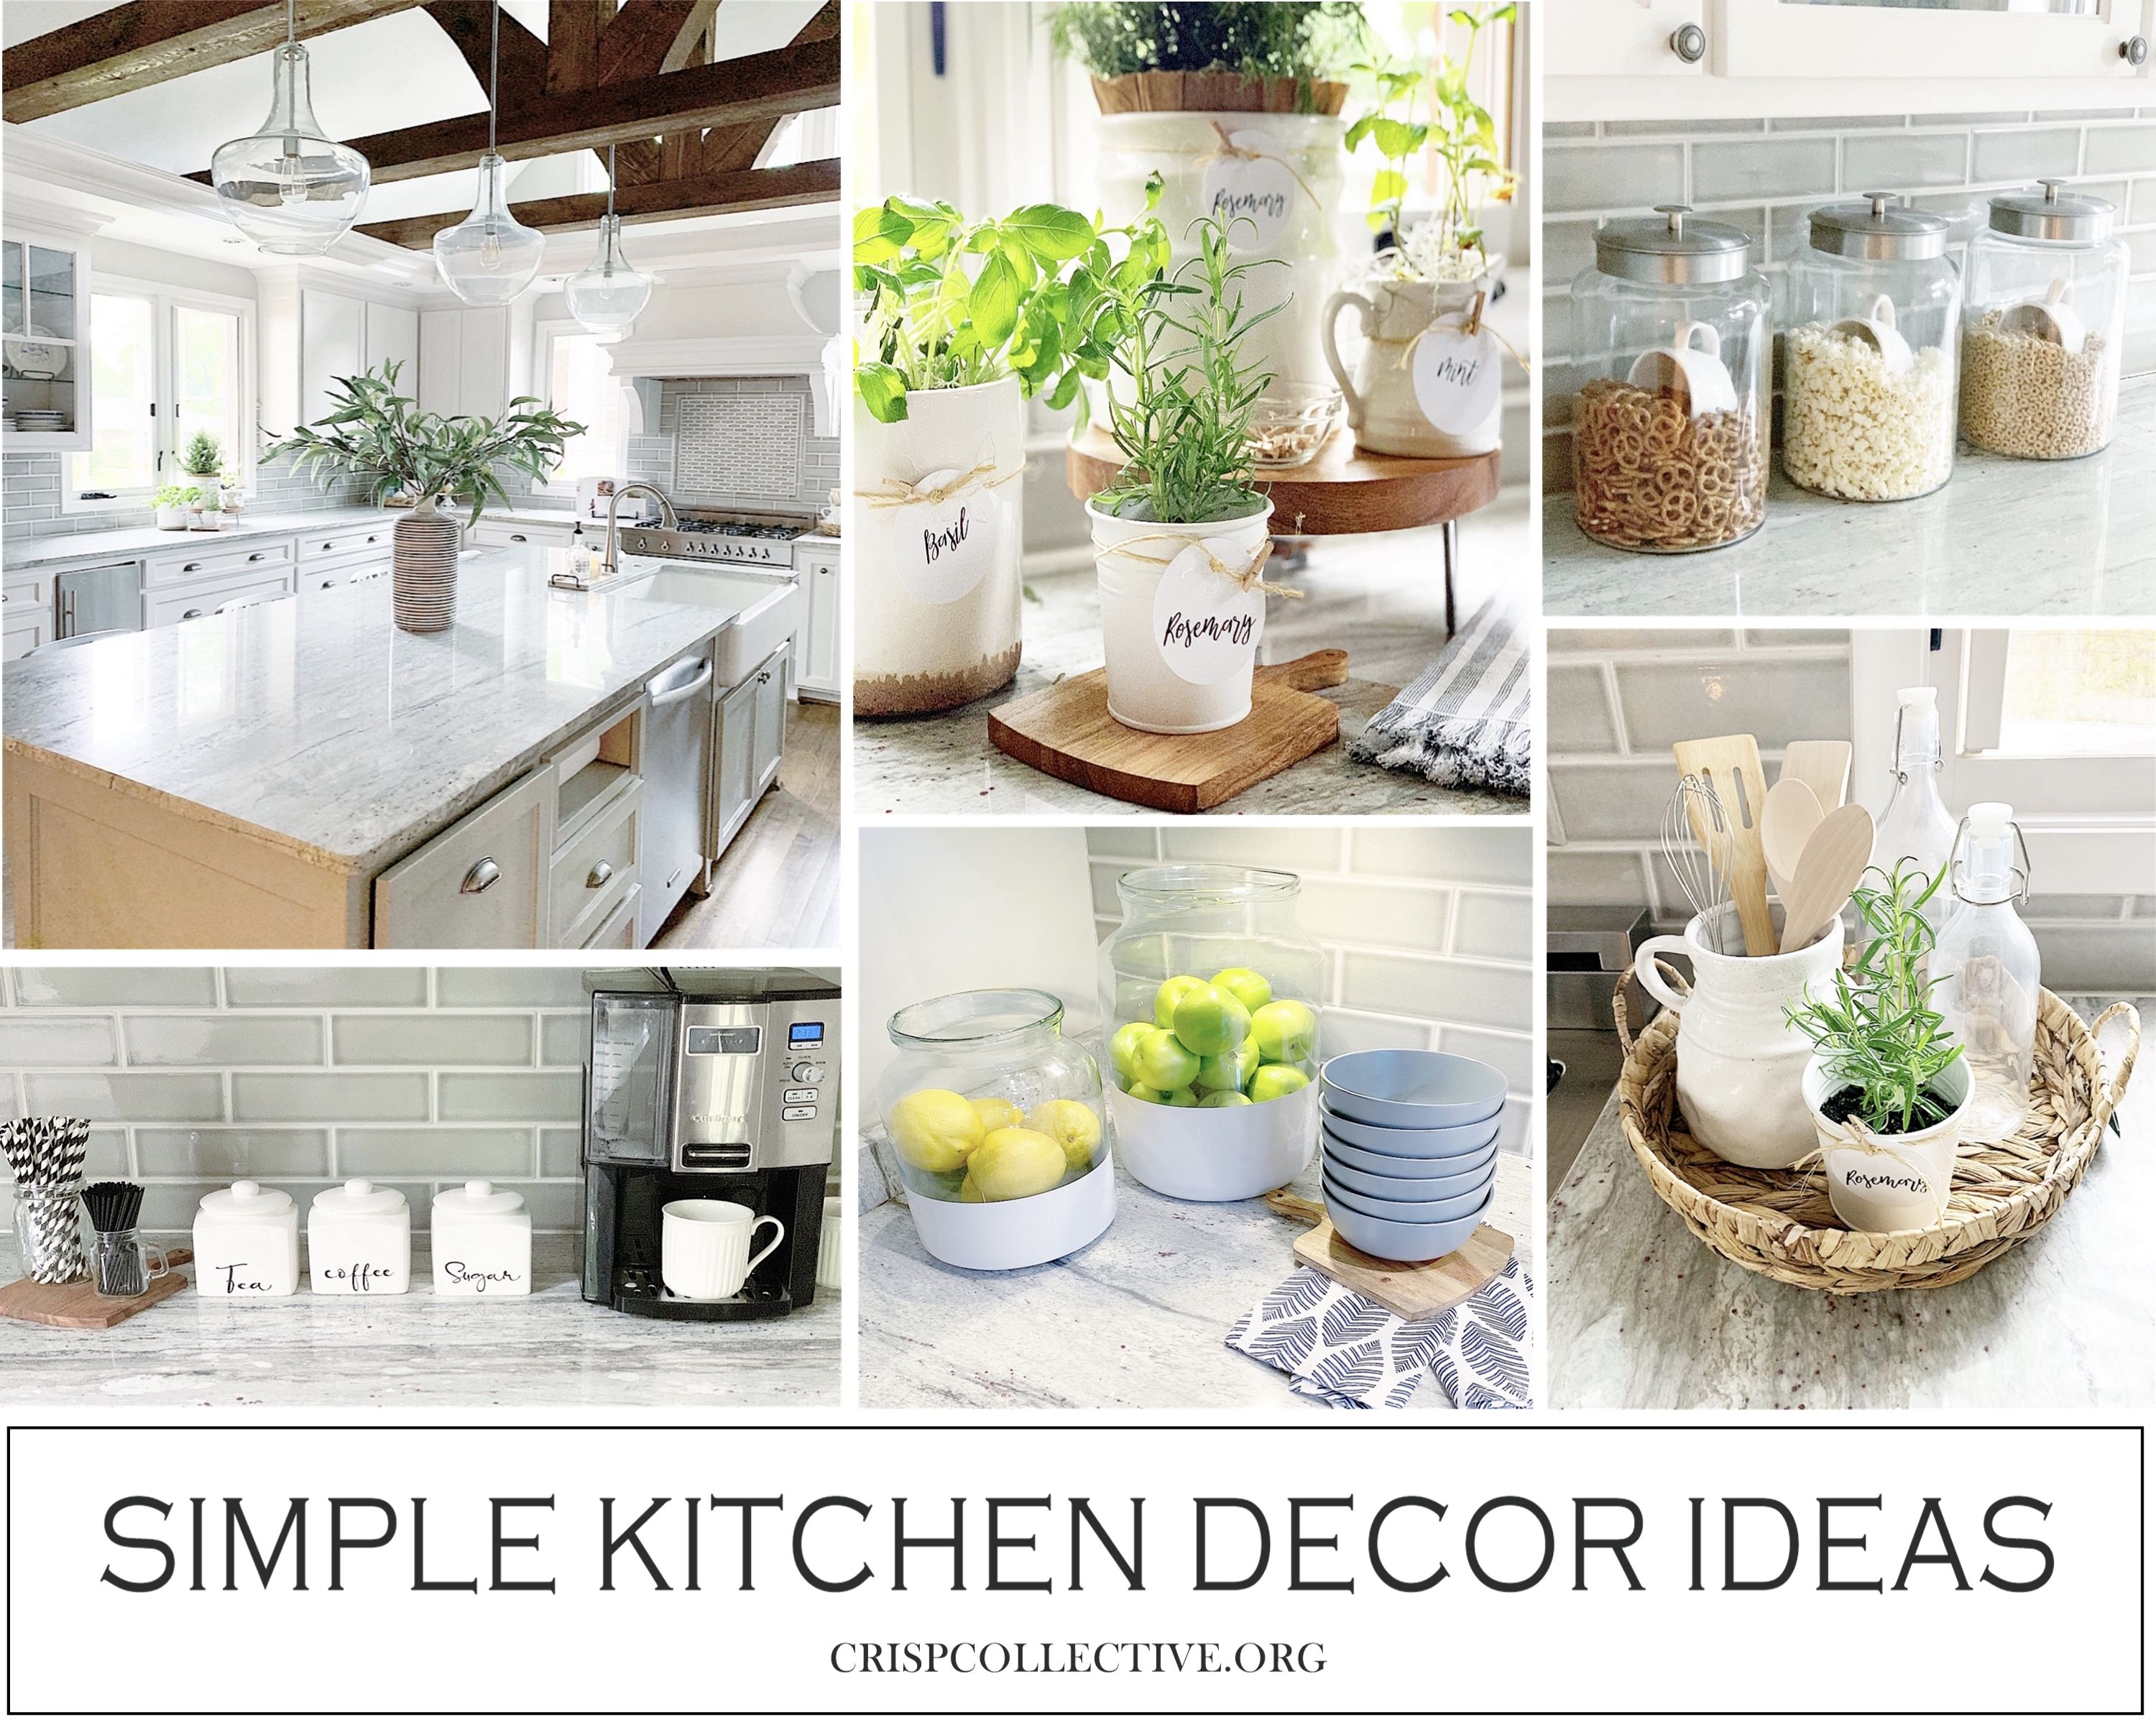 Simple Kitchen Decor Ideas Small Kitchen Decor Kitchen Decor